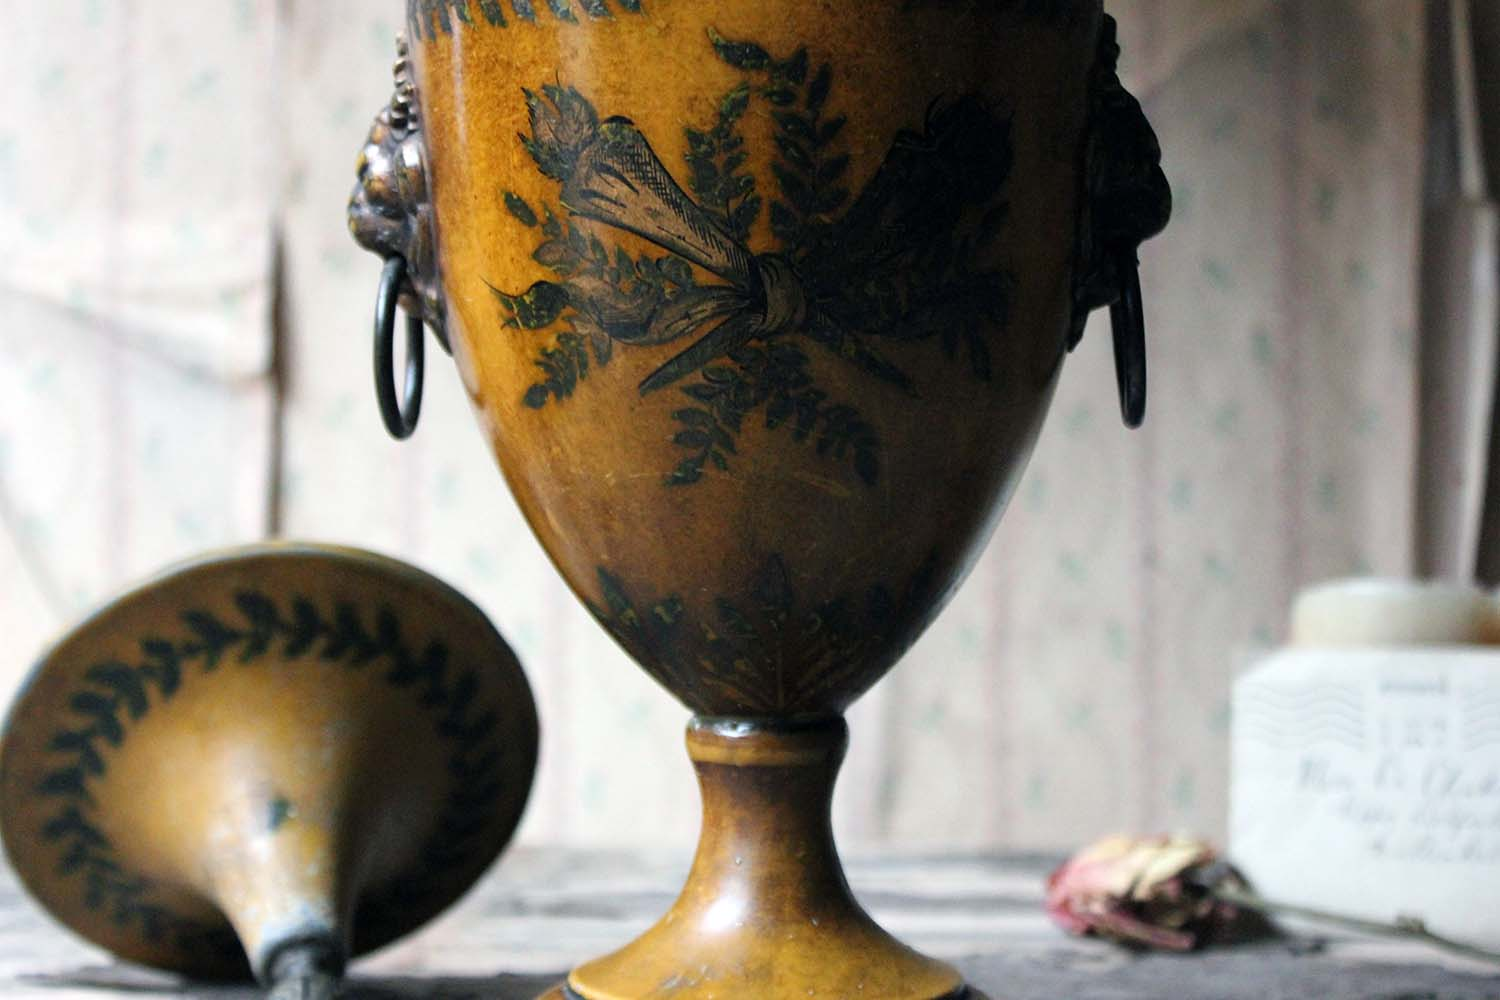 A Regency Period Hand-Painted Toleware Chestnut Urn & Cover c.1810-20